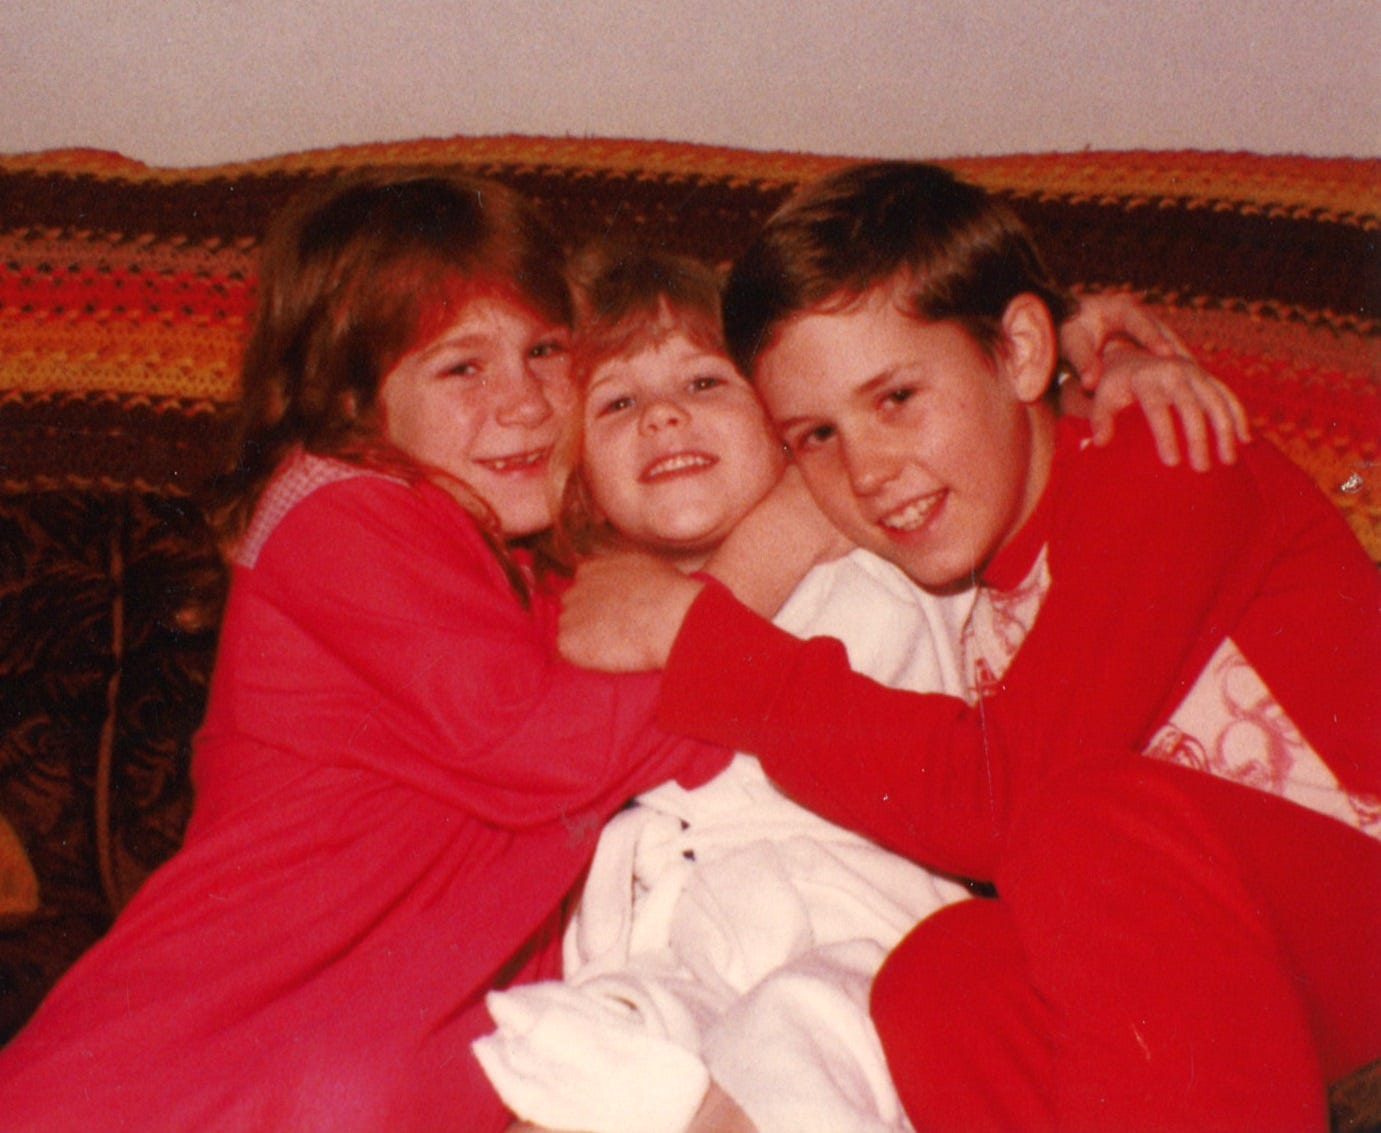 Halverson with younger sisters Tiffeny and Desiree in the early 1980s at their home in Salem.